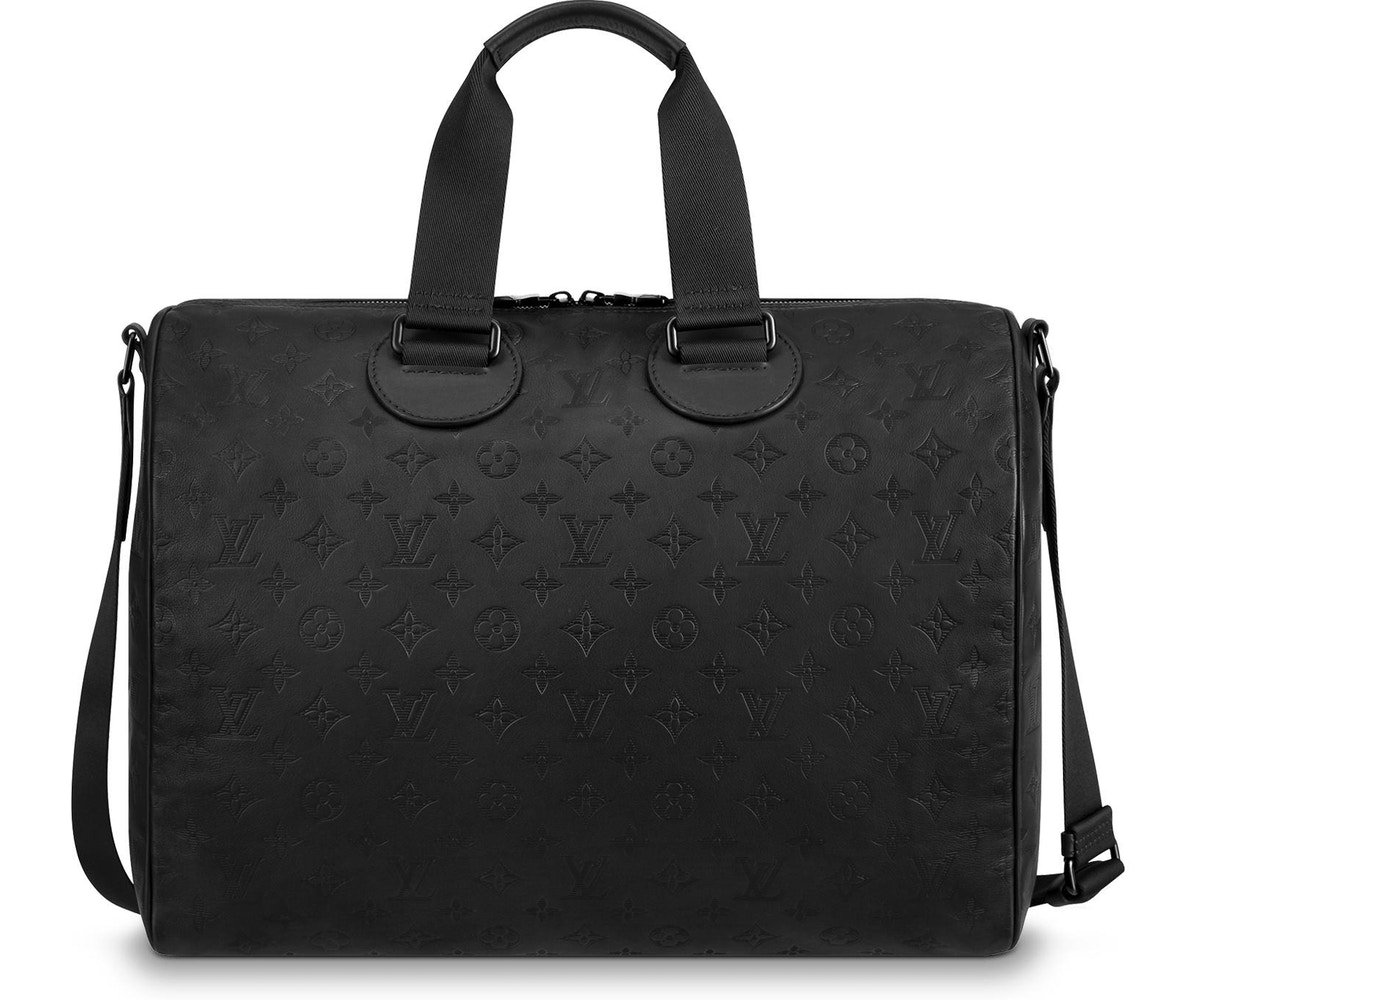 ab8376ff1402 Louis Vuitton Speedy Bandouliere Monogram Shadow 40 Black